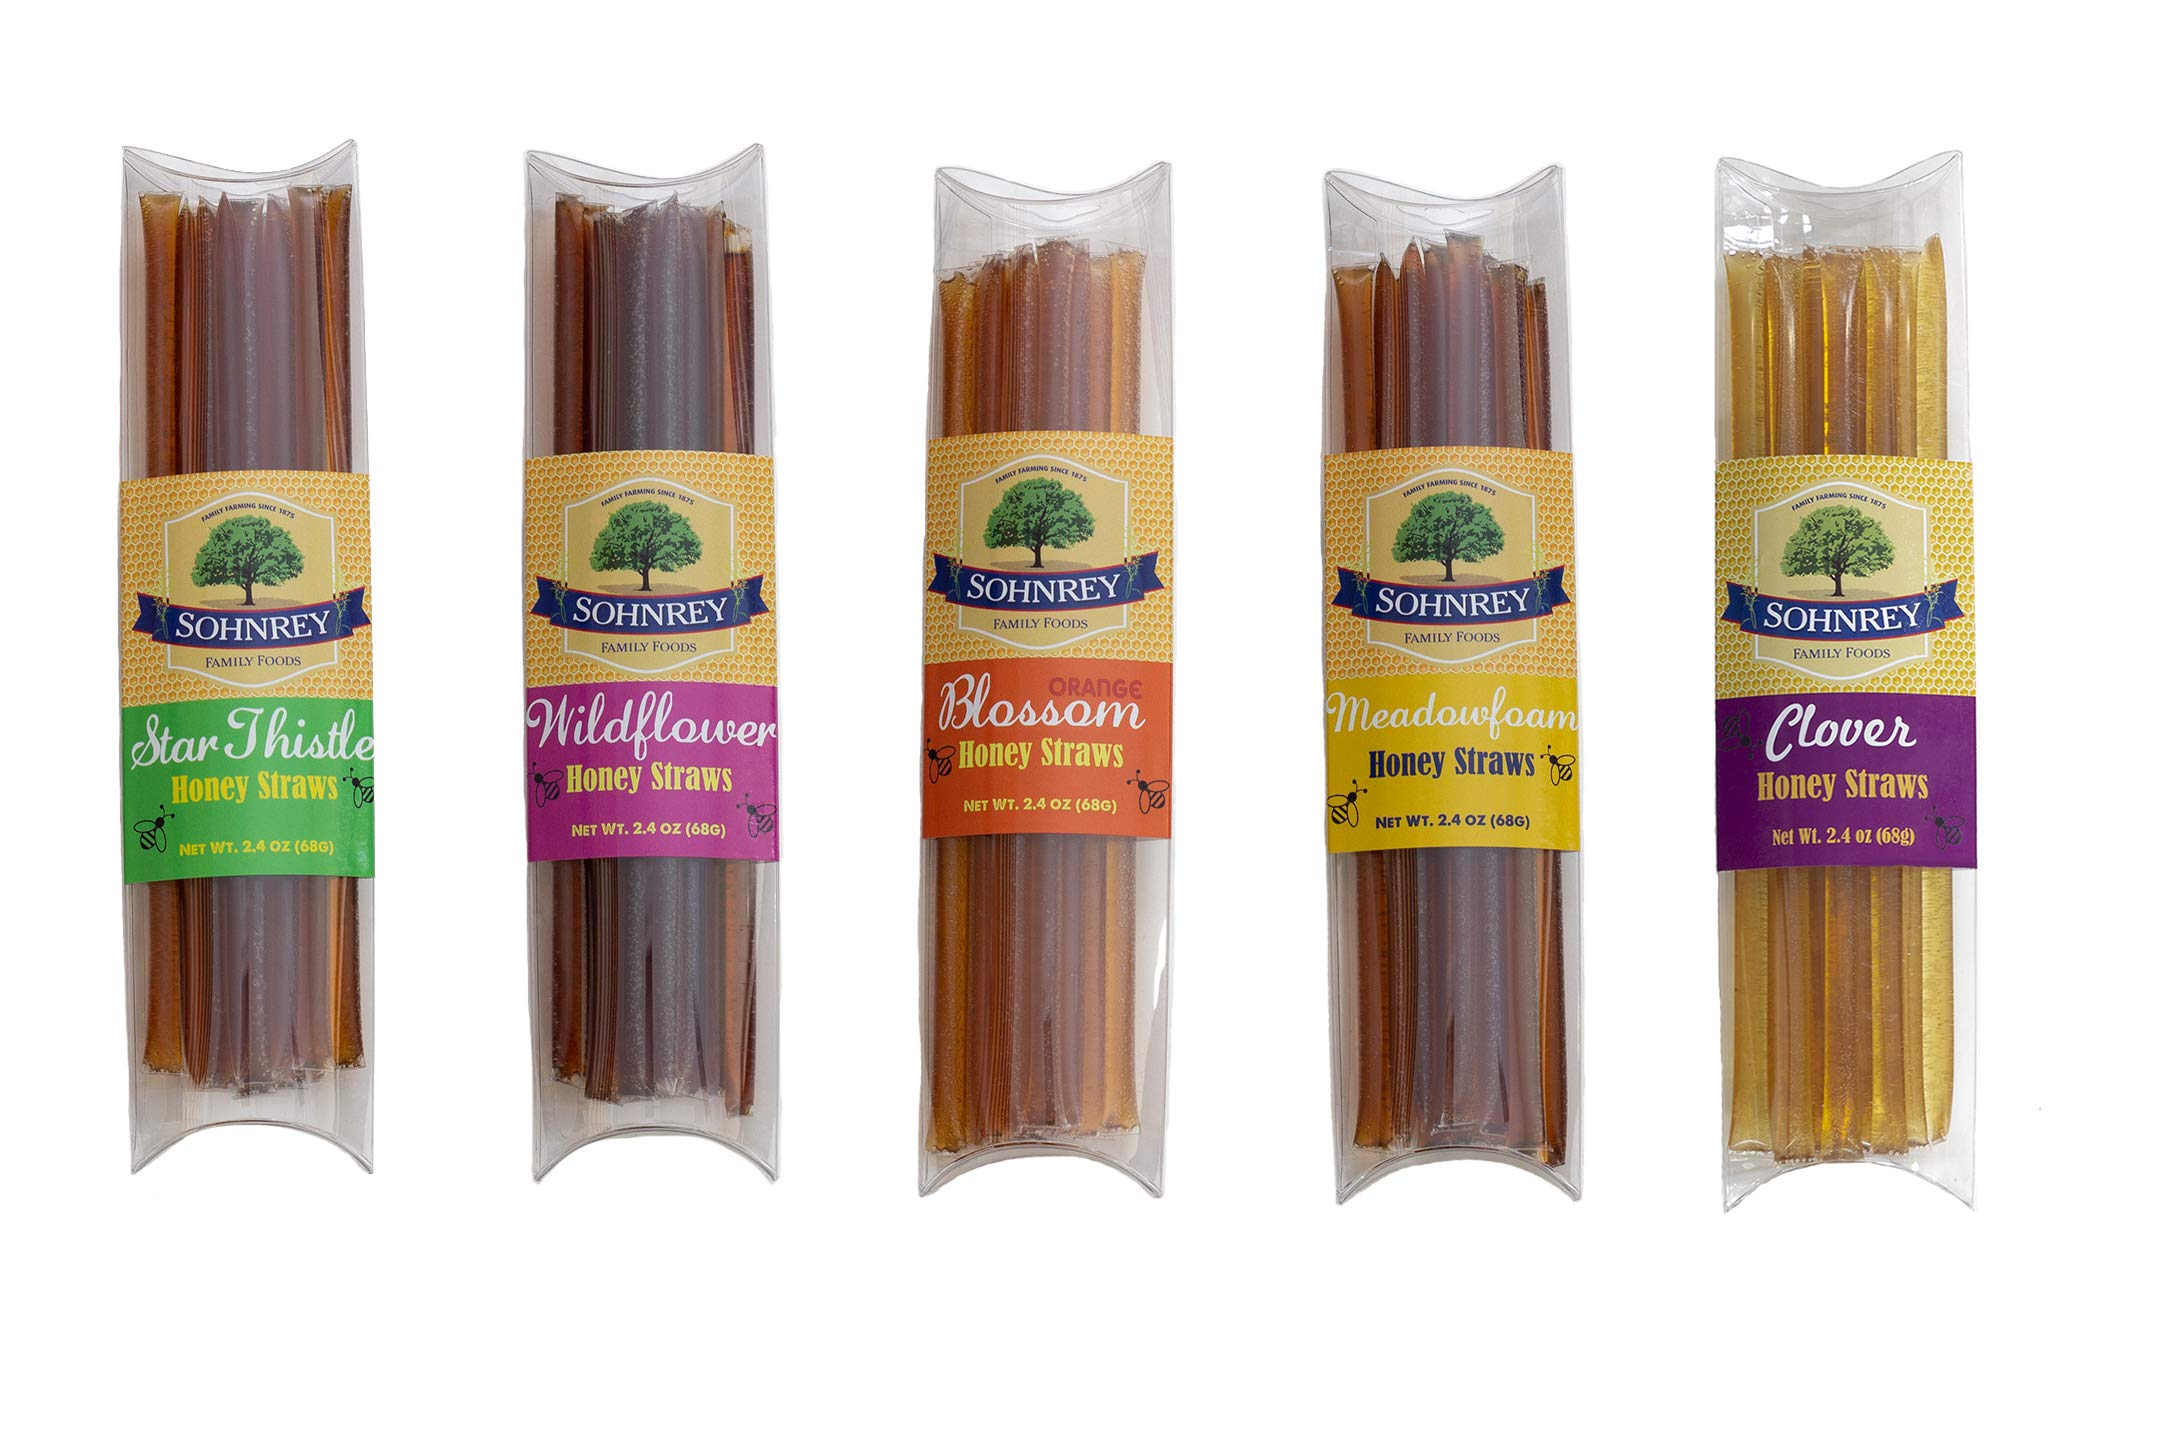 Honey Straws Variety Gift Pack - Five 100% Pure and Natural California Honey Varietals - Sohnrey Family Foods by Sohnrey Family Foods